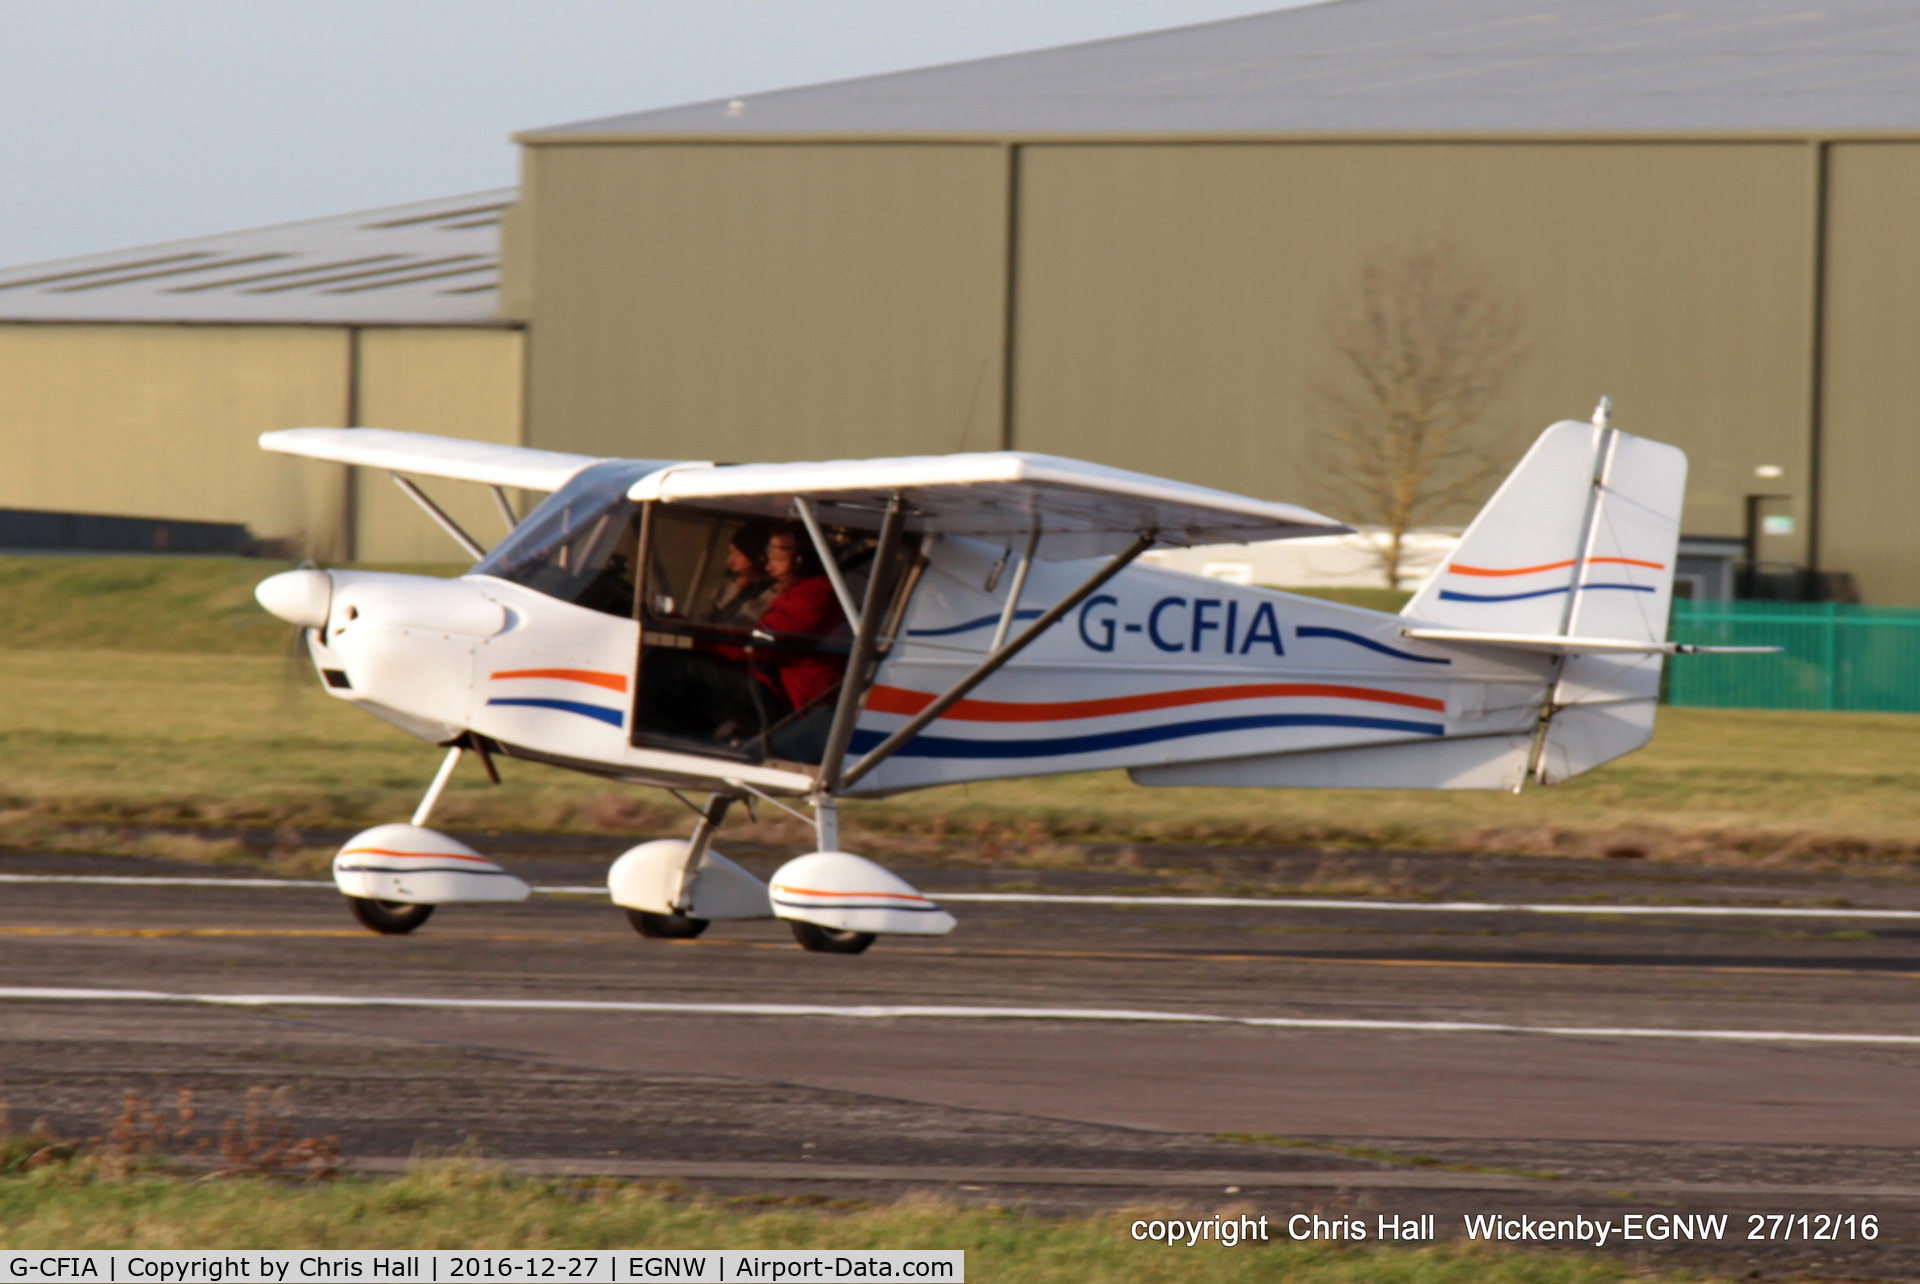 G-CFIA, 2008 Skyranger Swift 912S(1) C/N BMAA/HB/561, at the Wickenby